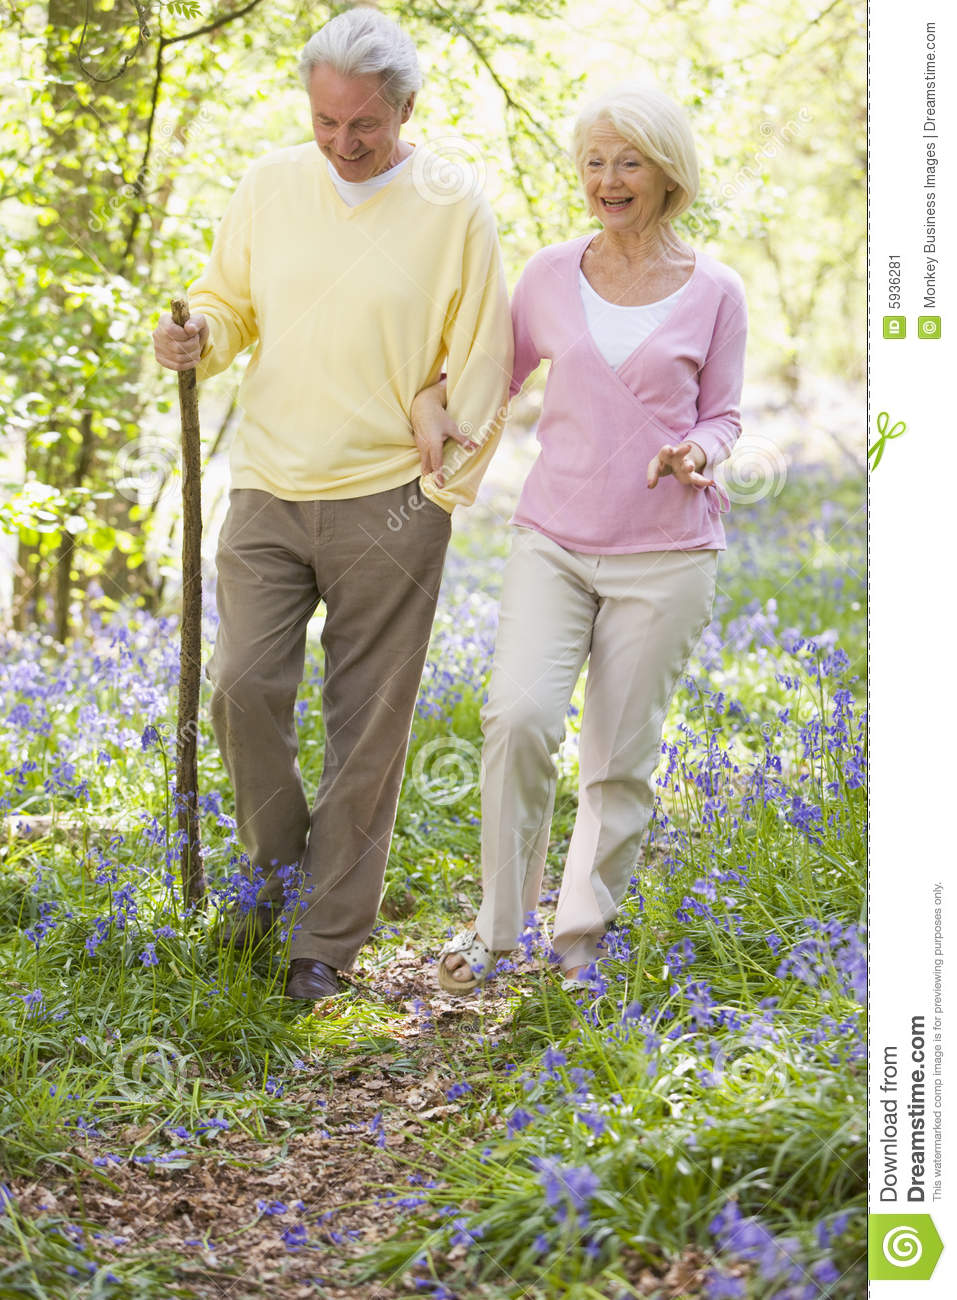 Couple outdoors smiling stick walking